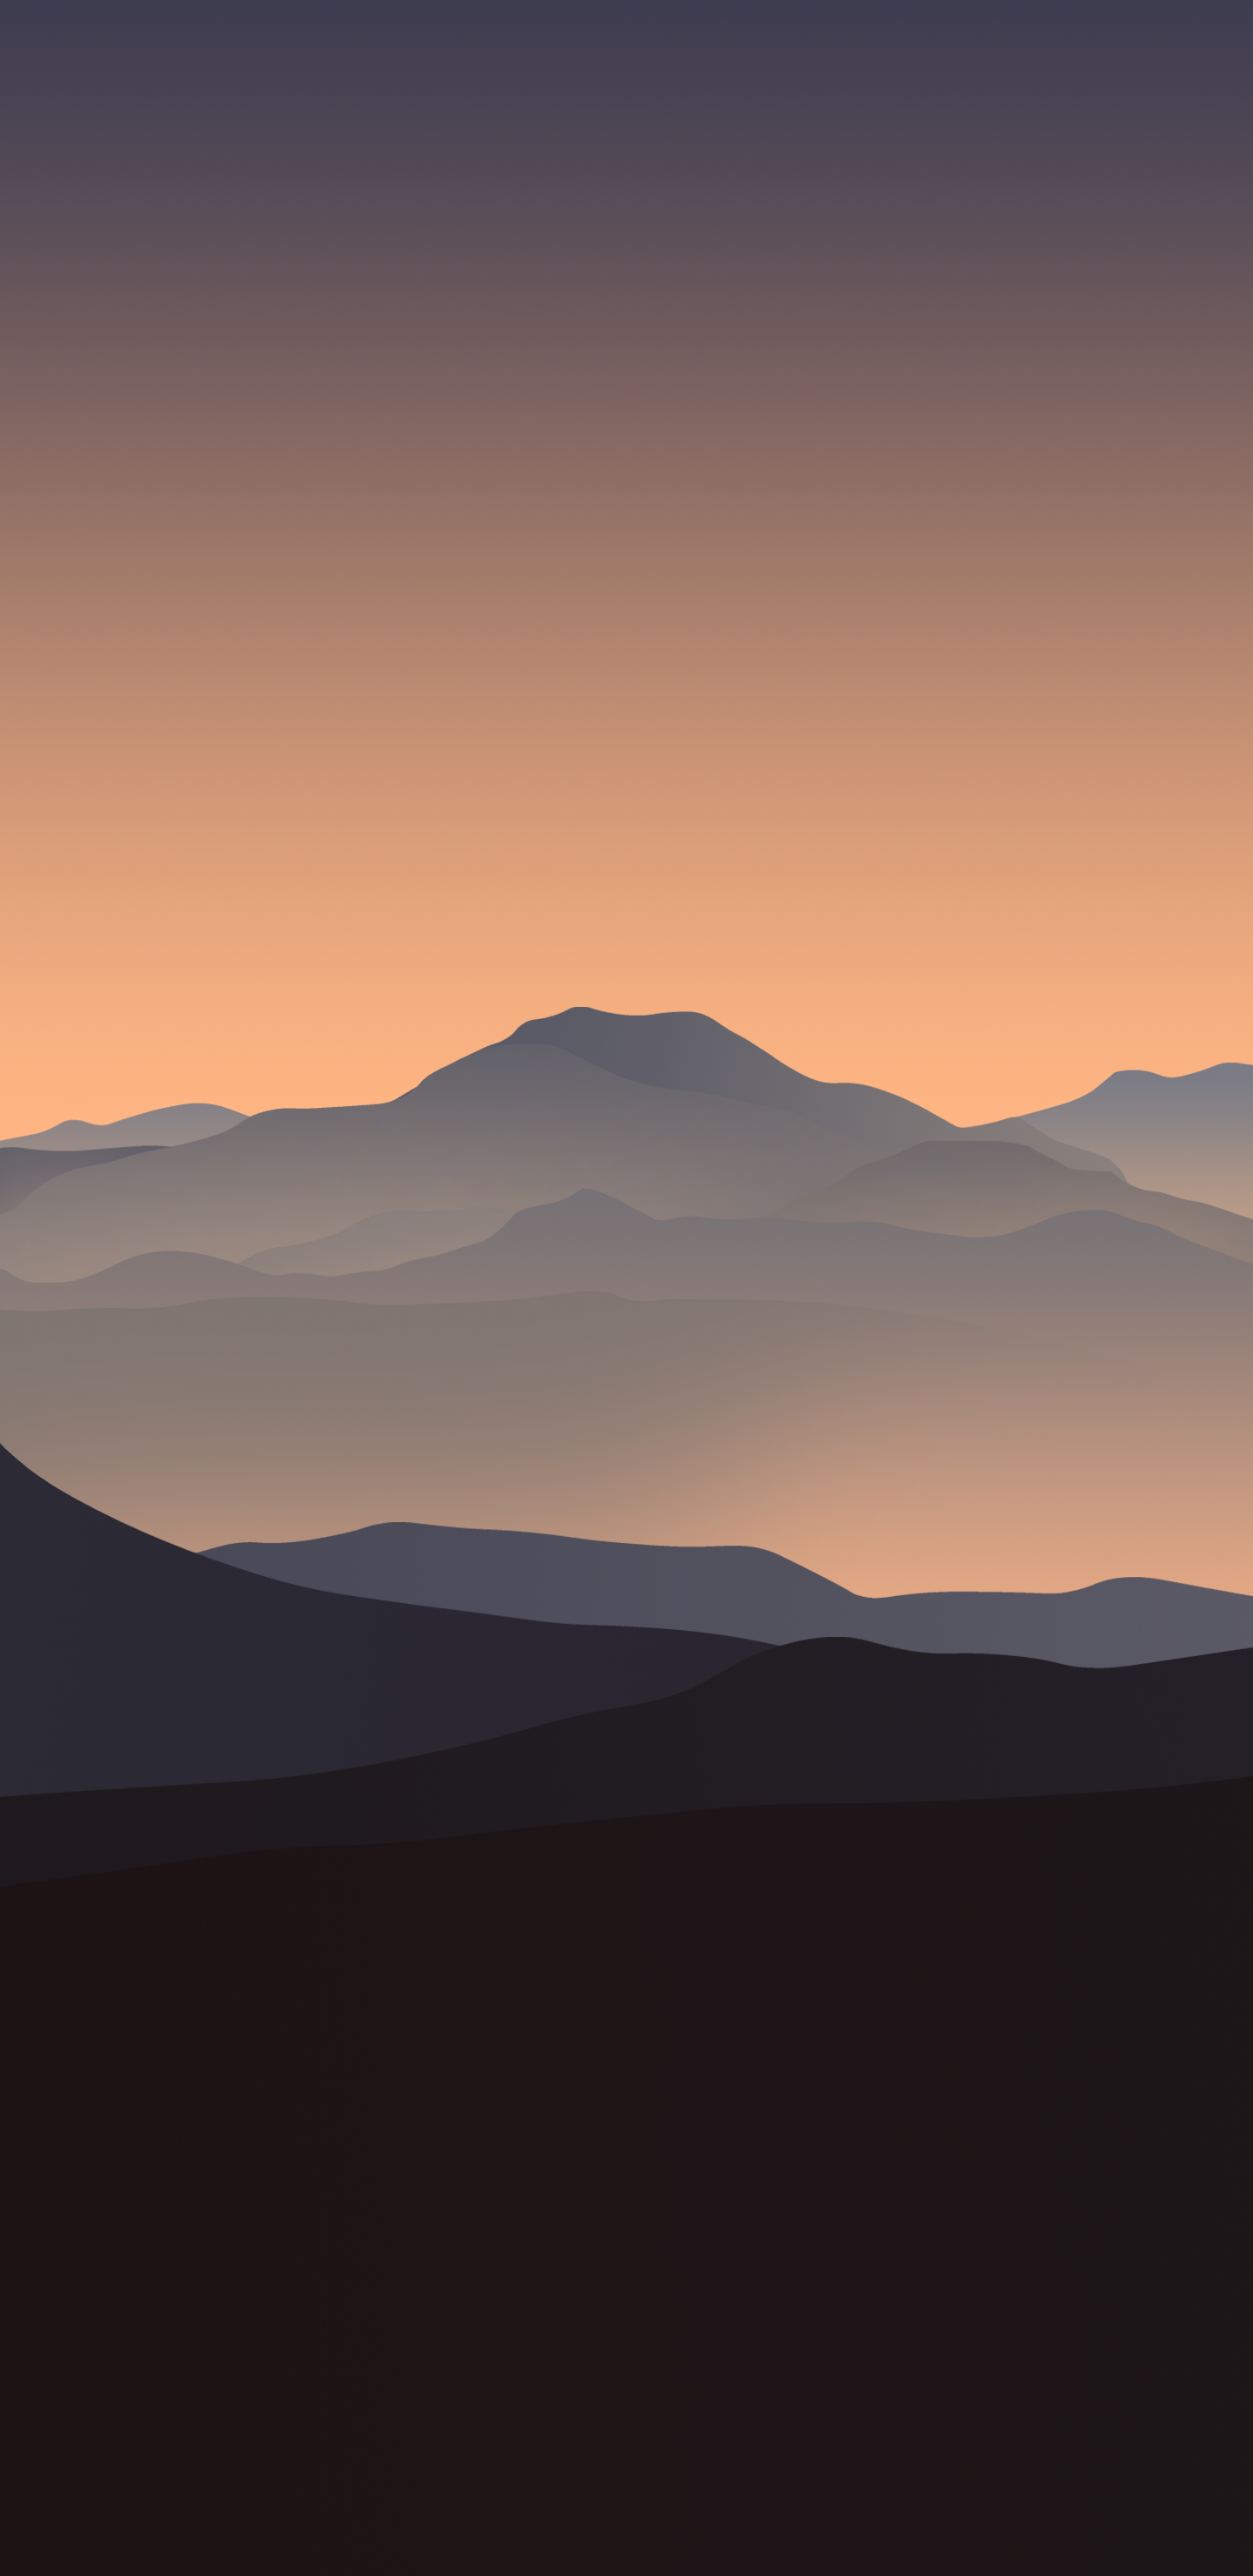 Wallpapers of the week: sunset mountains